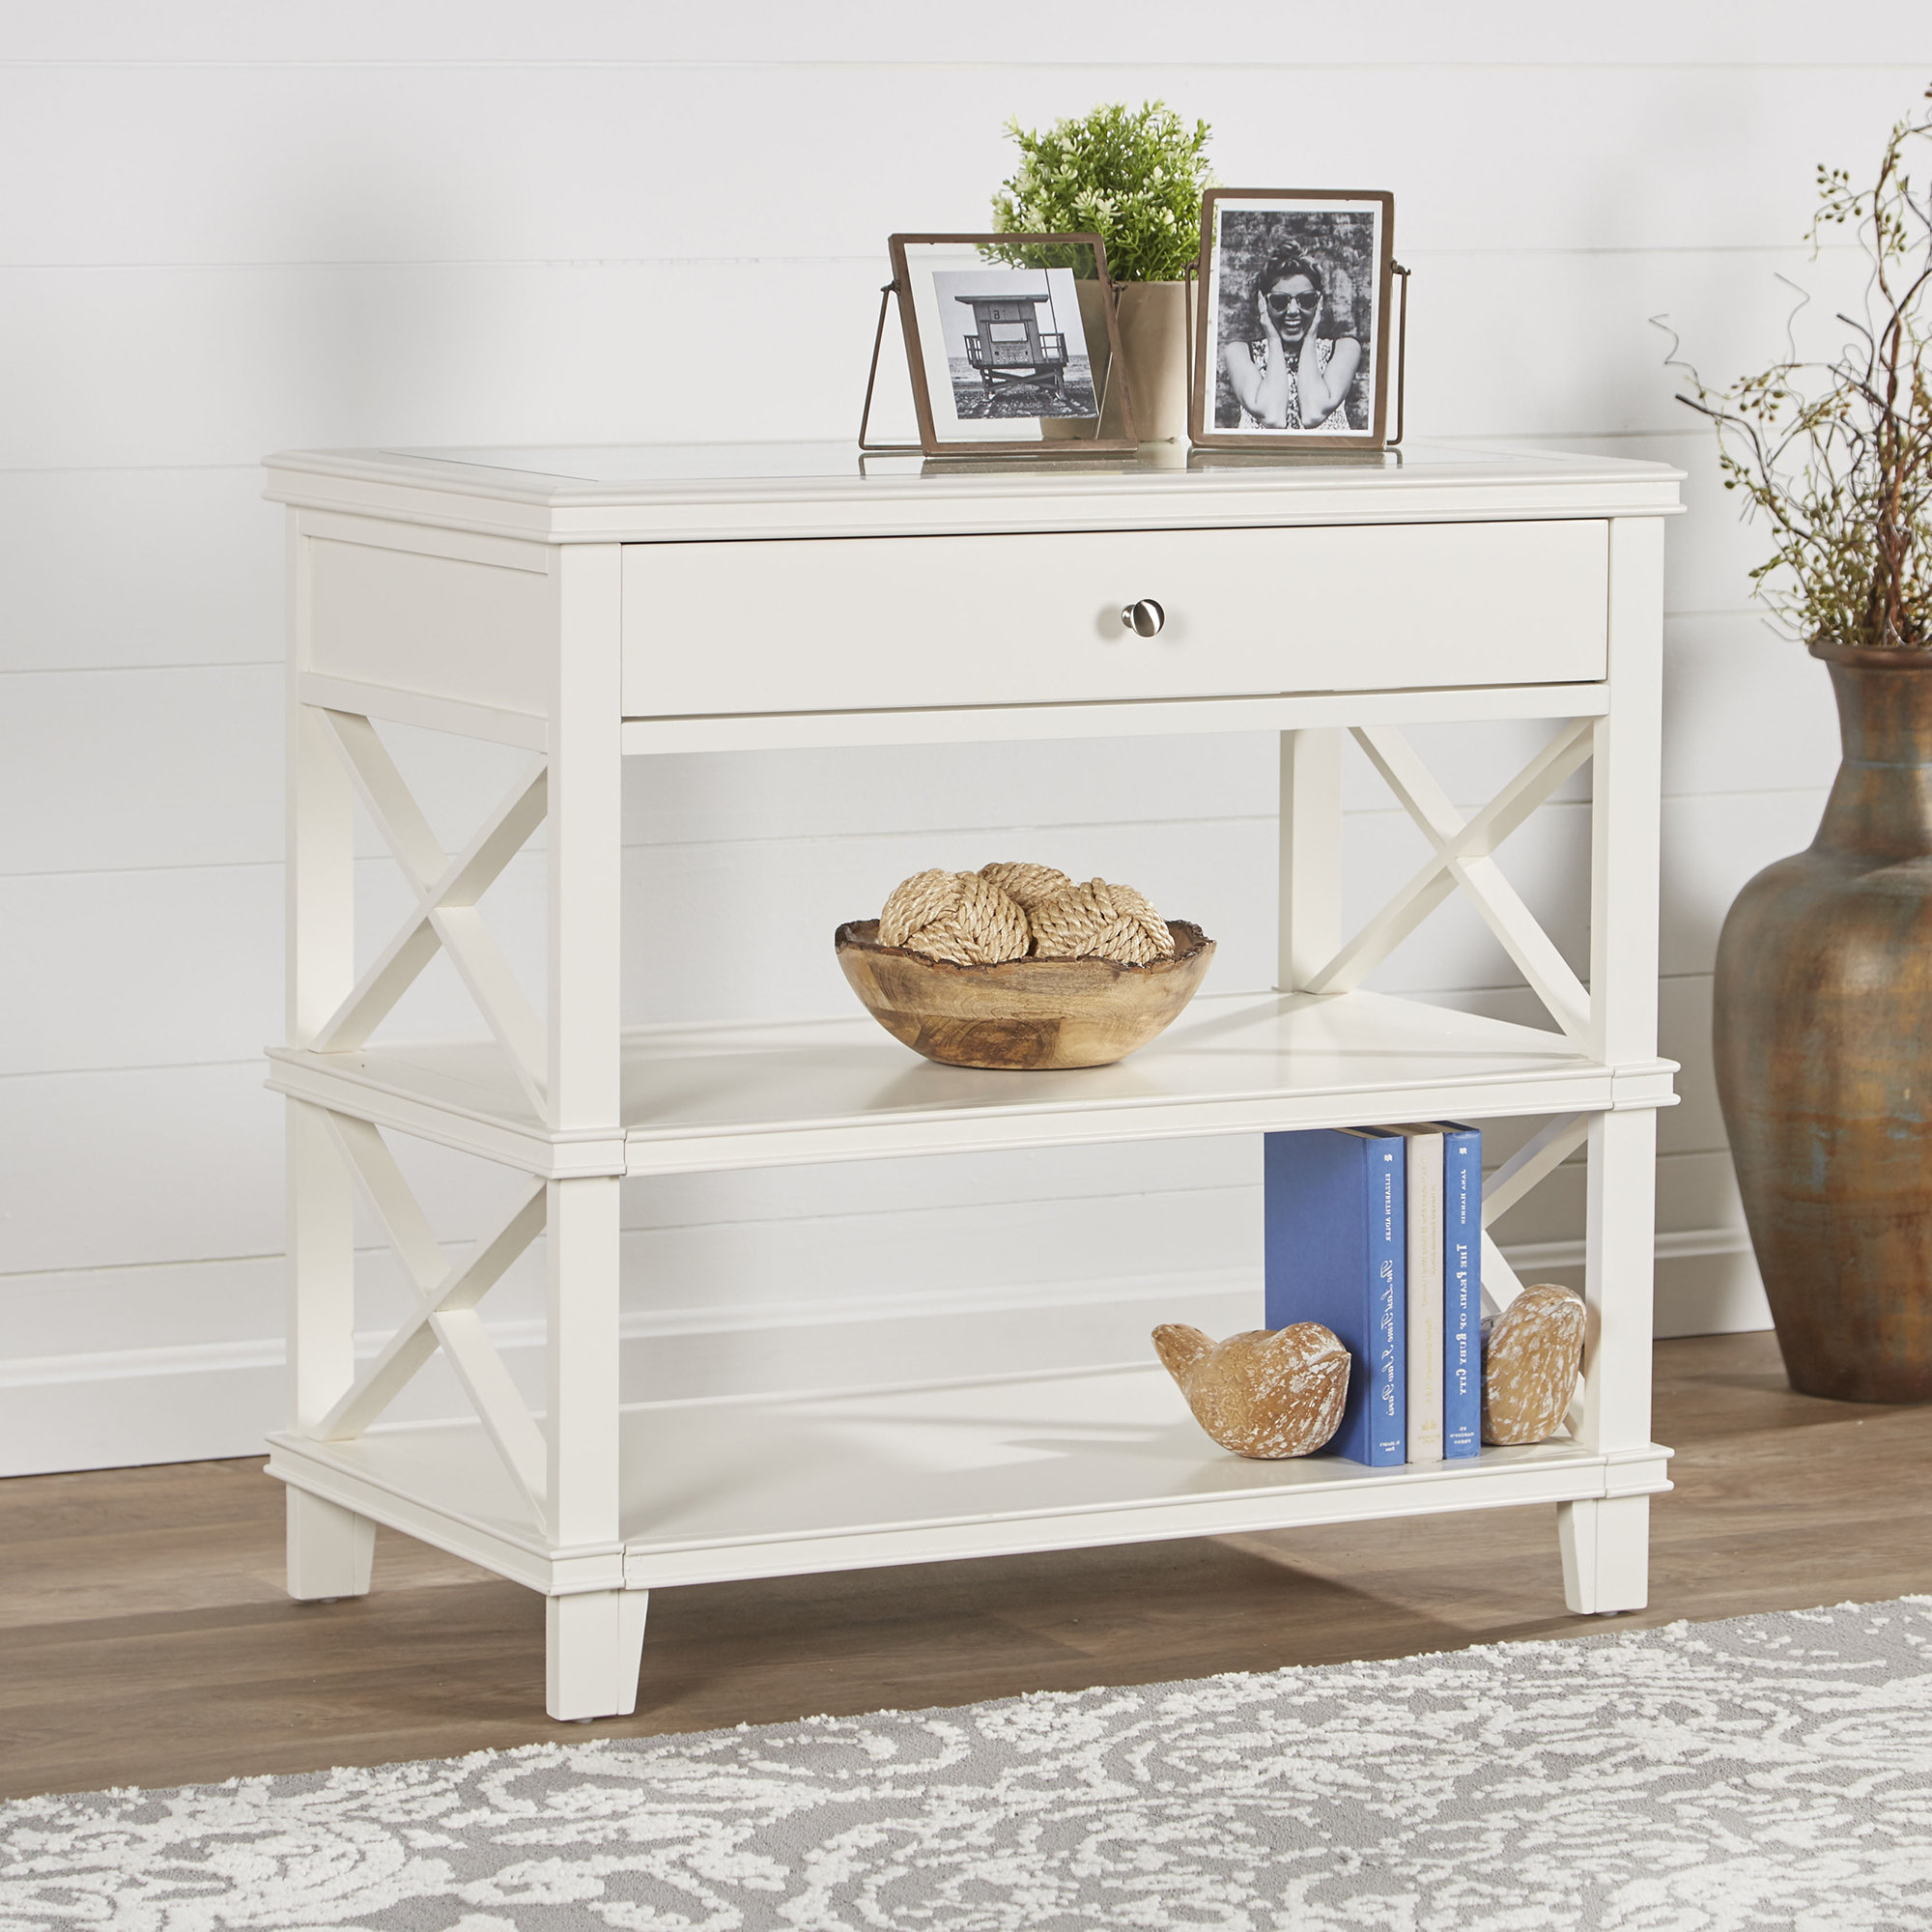 Bachelor's Chest Nightstands | Birch Lane With Raven Grey Tv Stands (View 5 of 20)